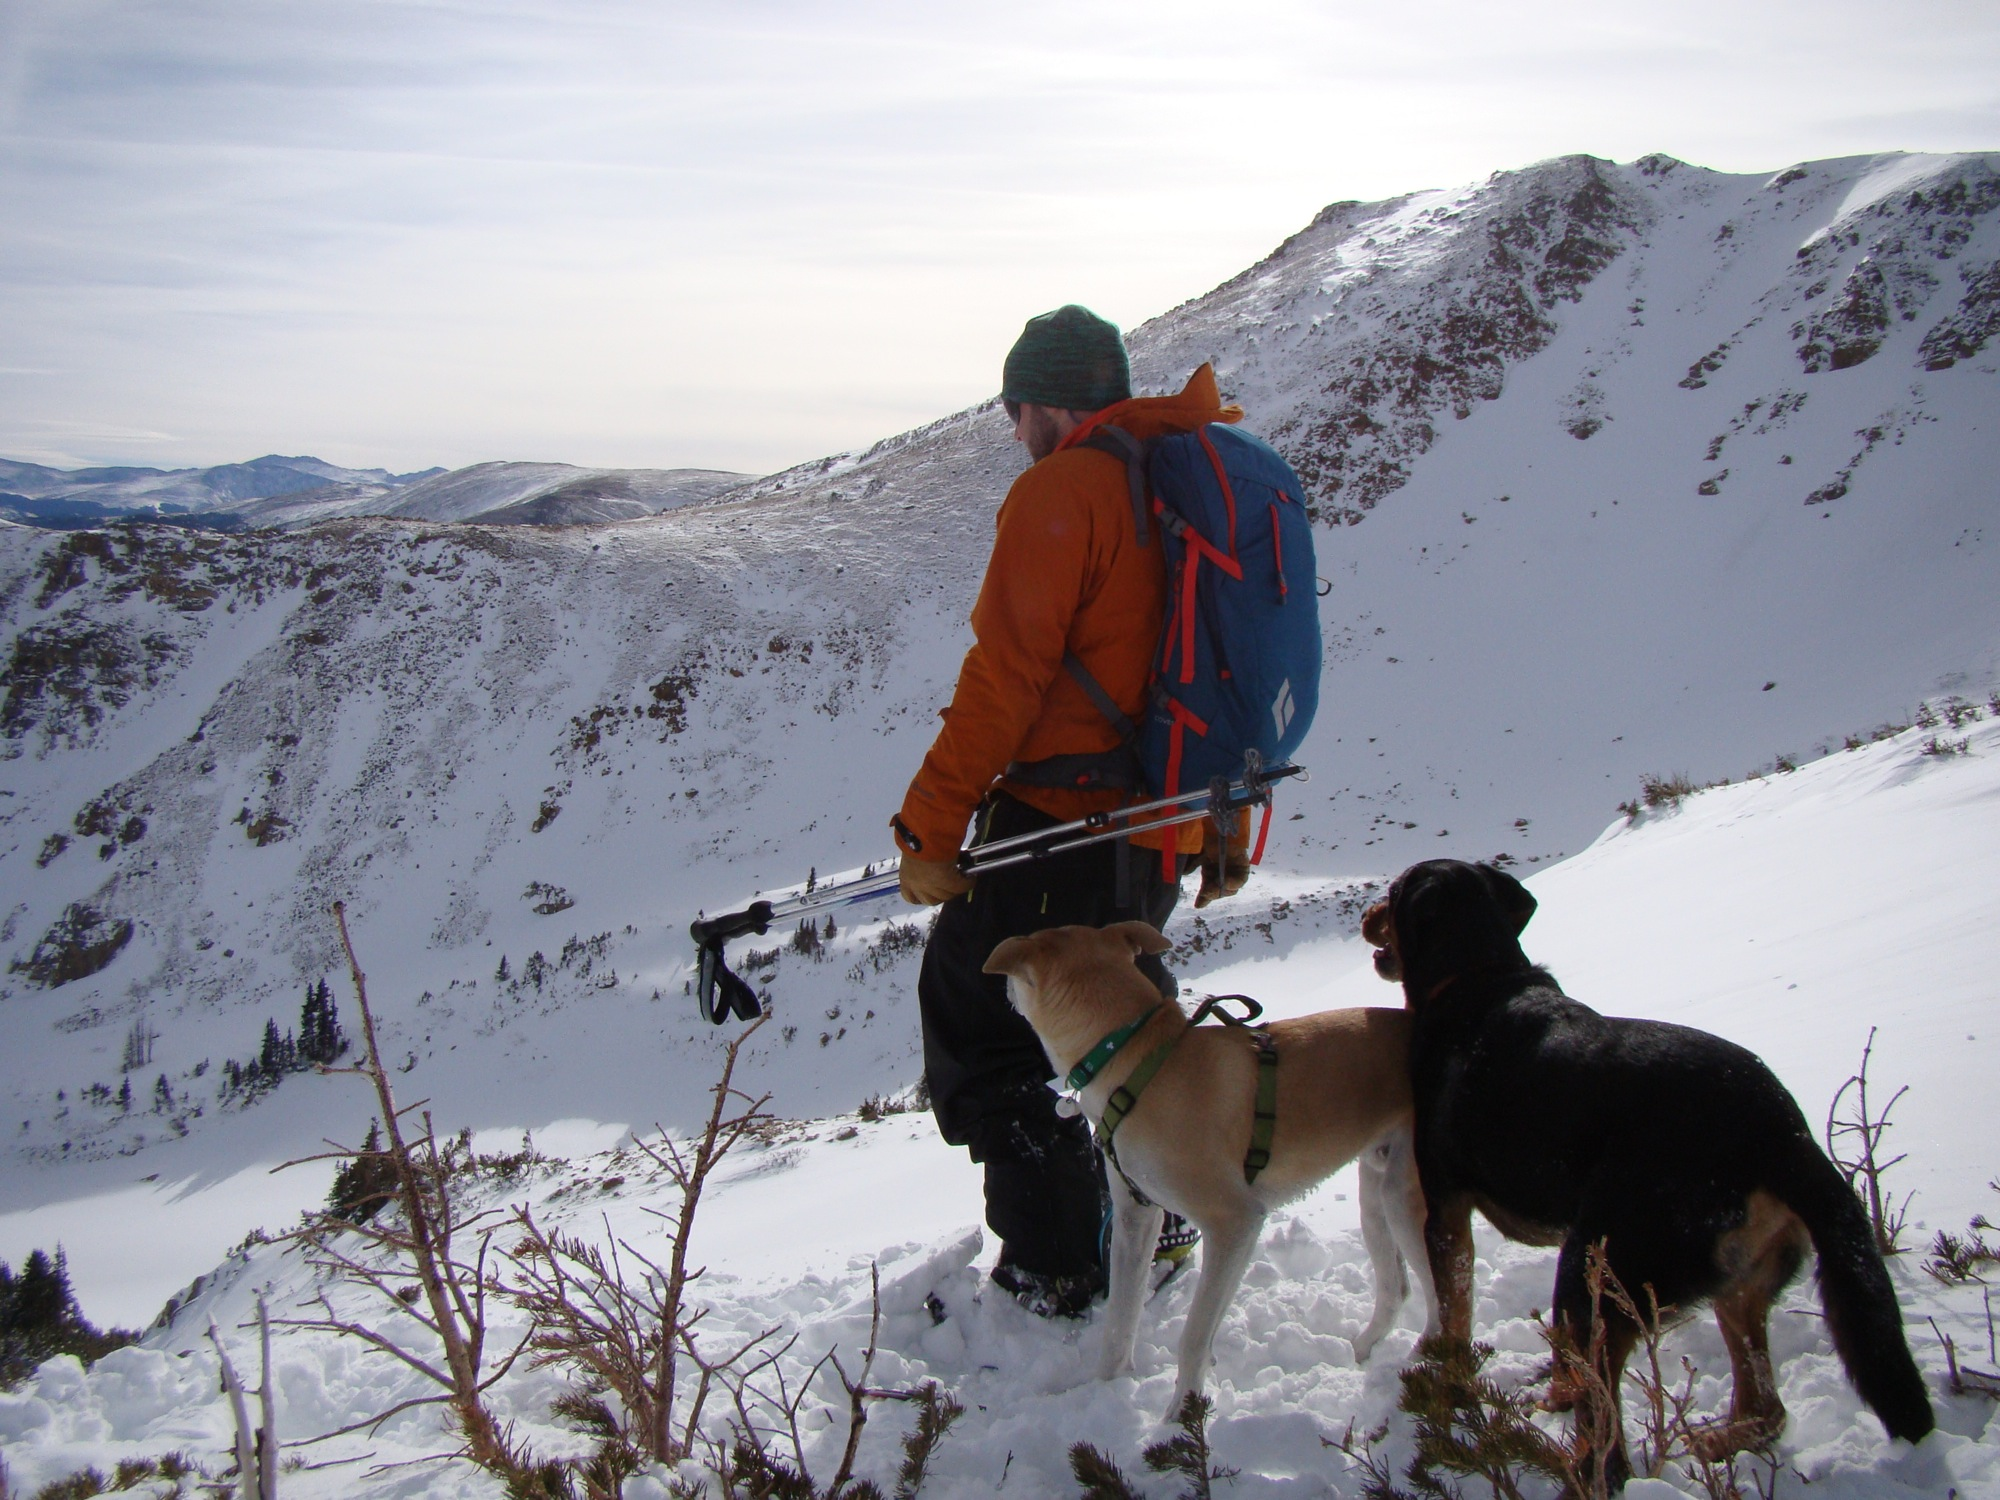 George and the Pups About to Drop Into the South Chutes